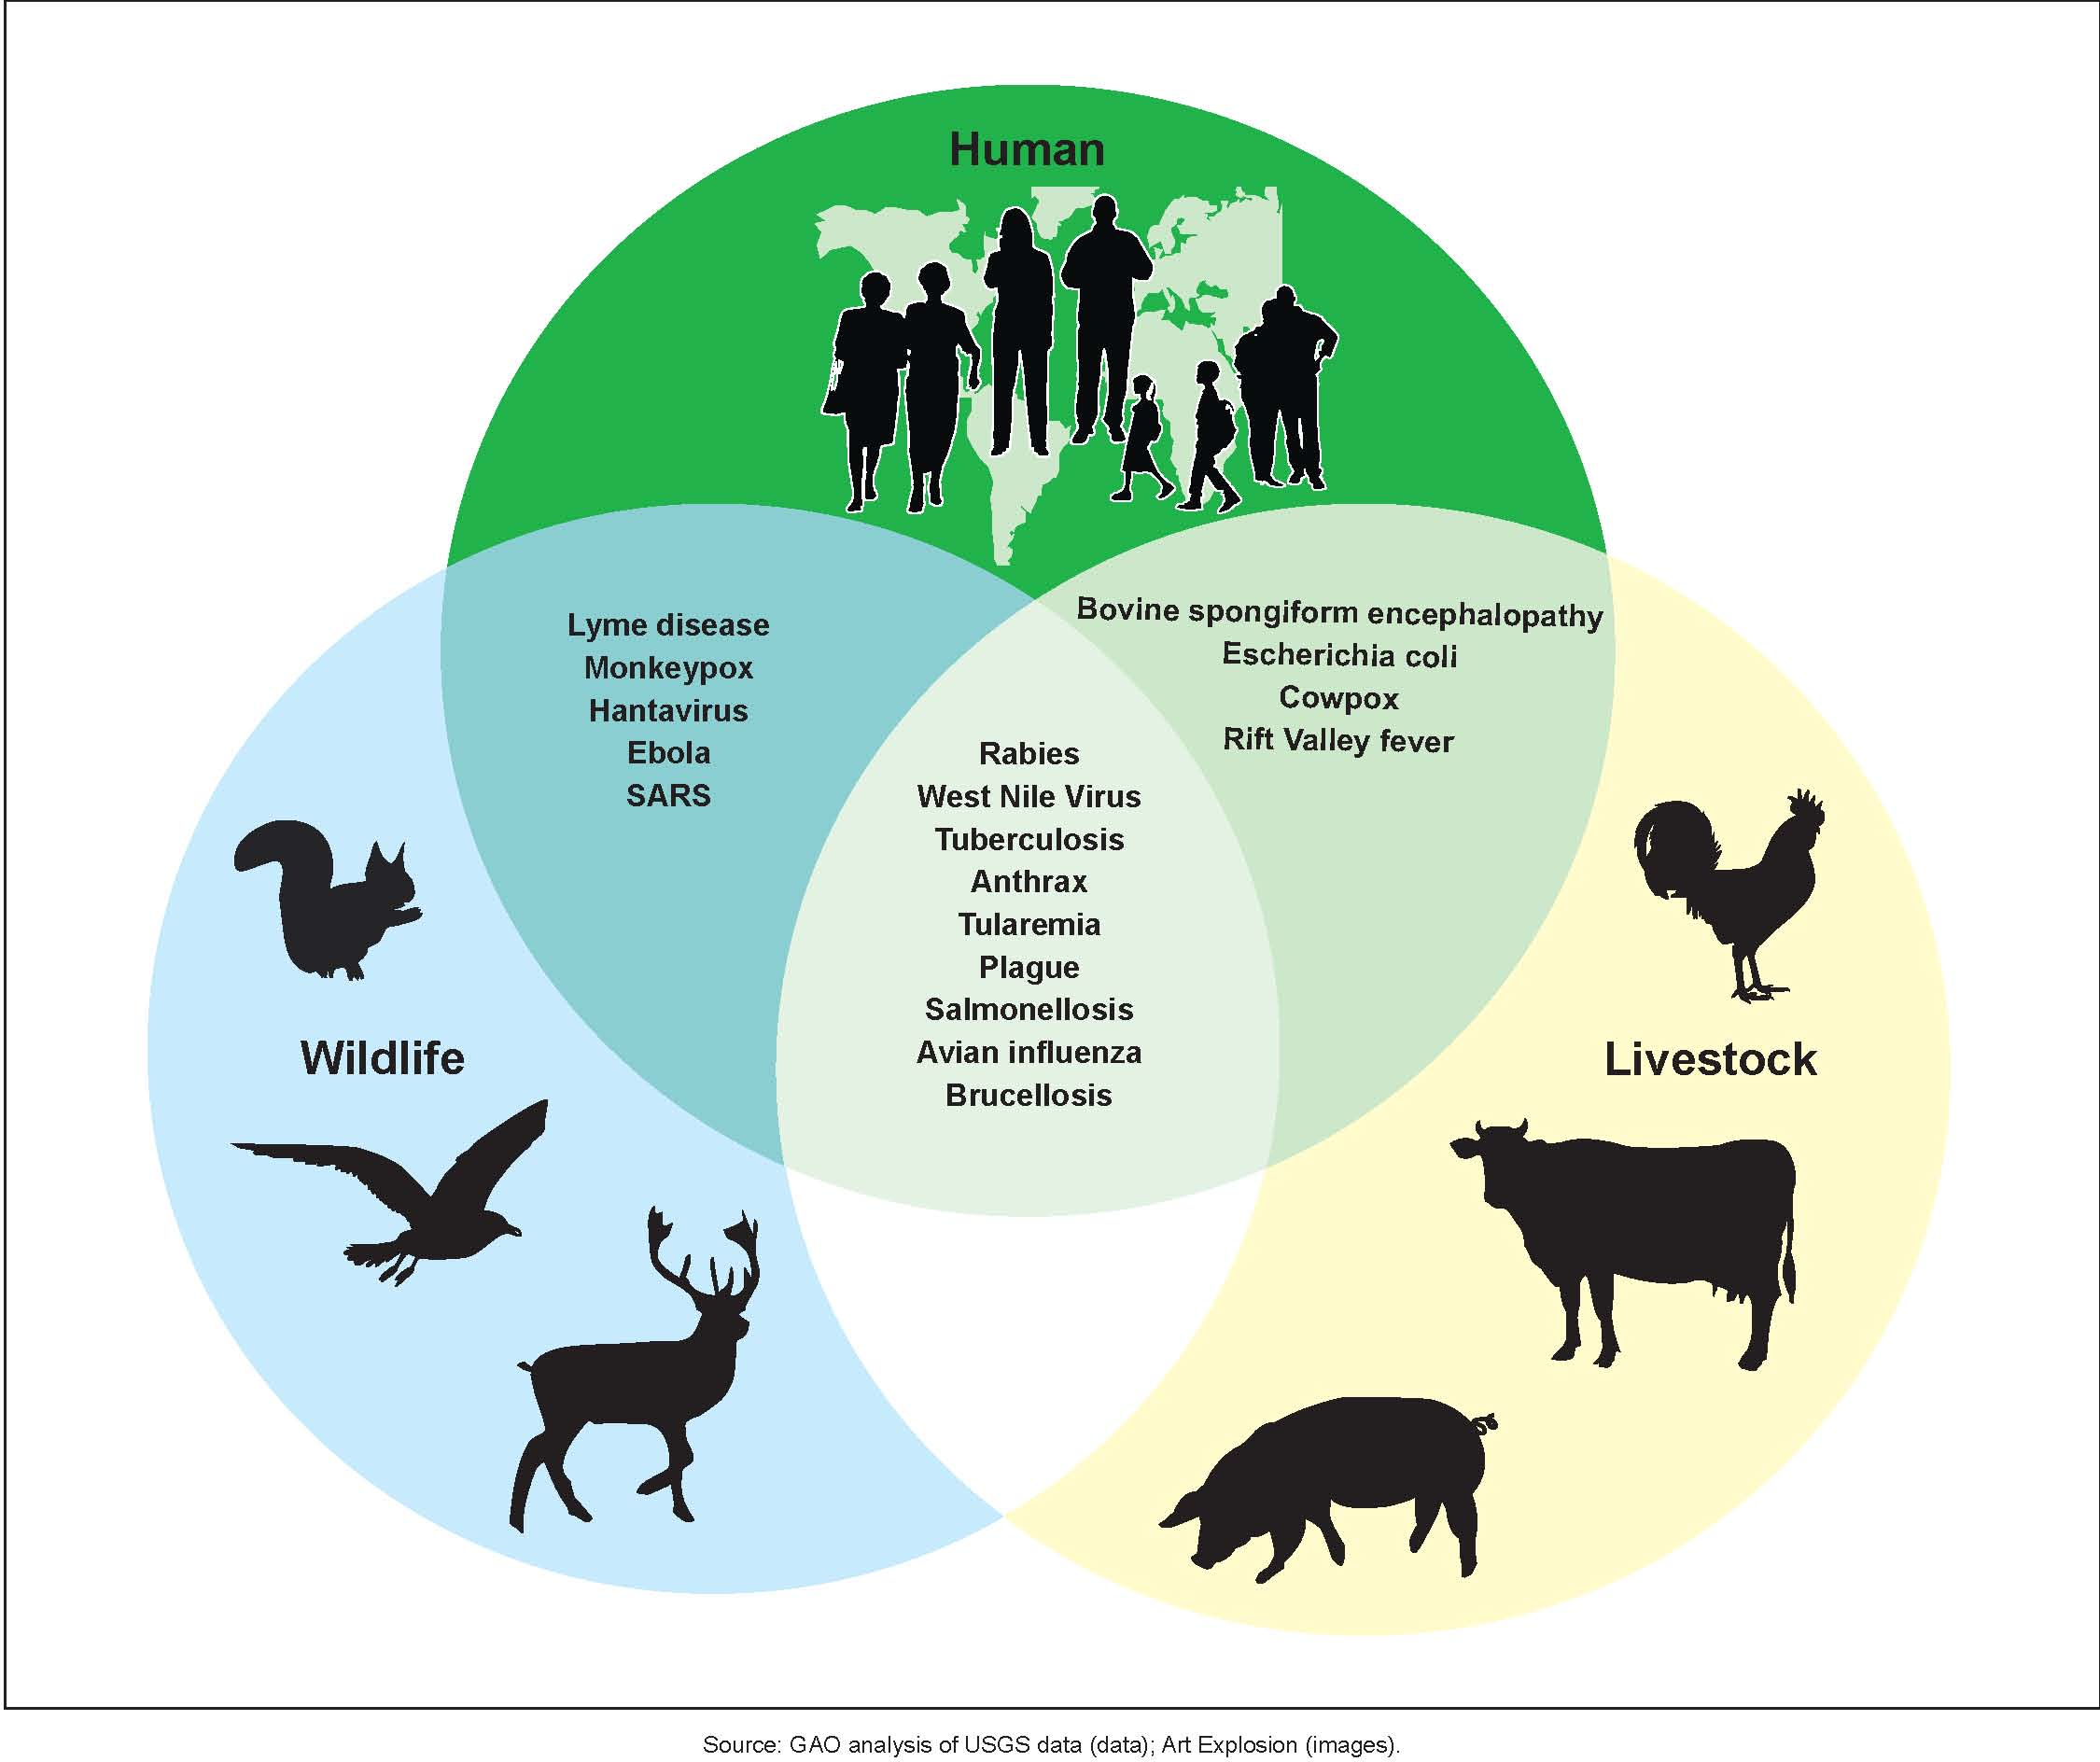 Examples of Zoonotic Diseases and Their Affected Populations